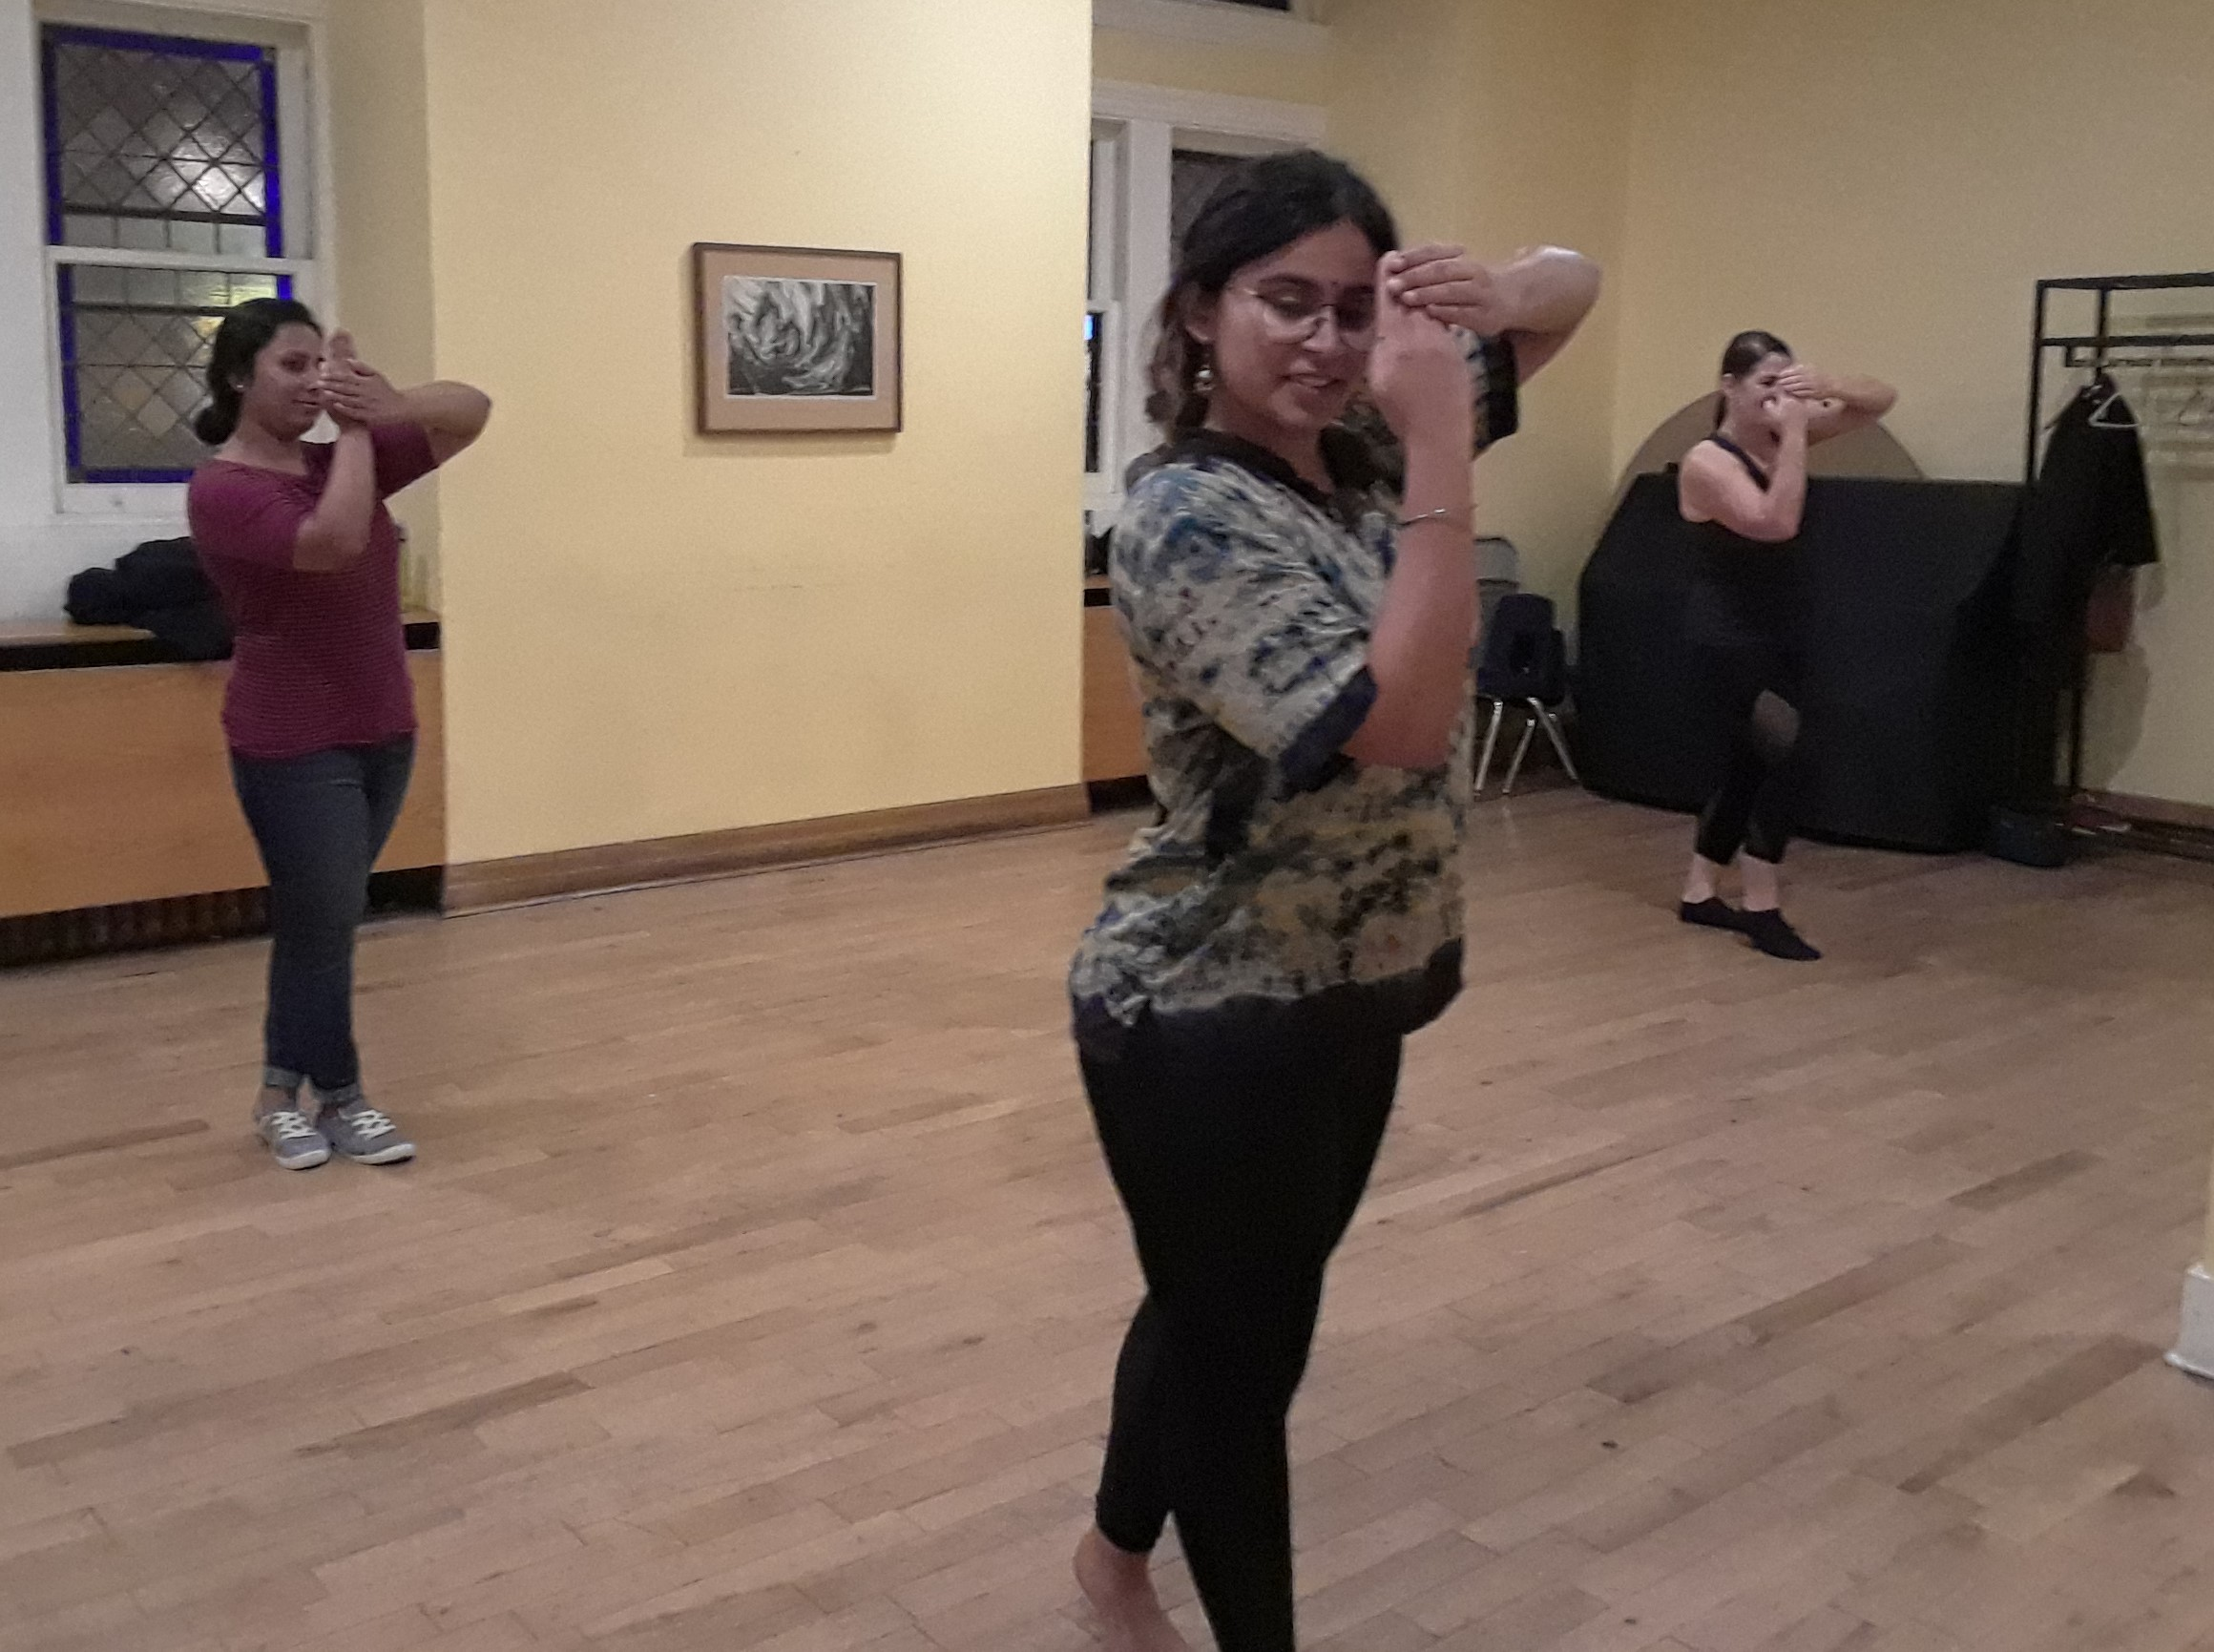 bollywood_and_classical_indian_dance_classes_in_toronto (6).jpg